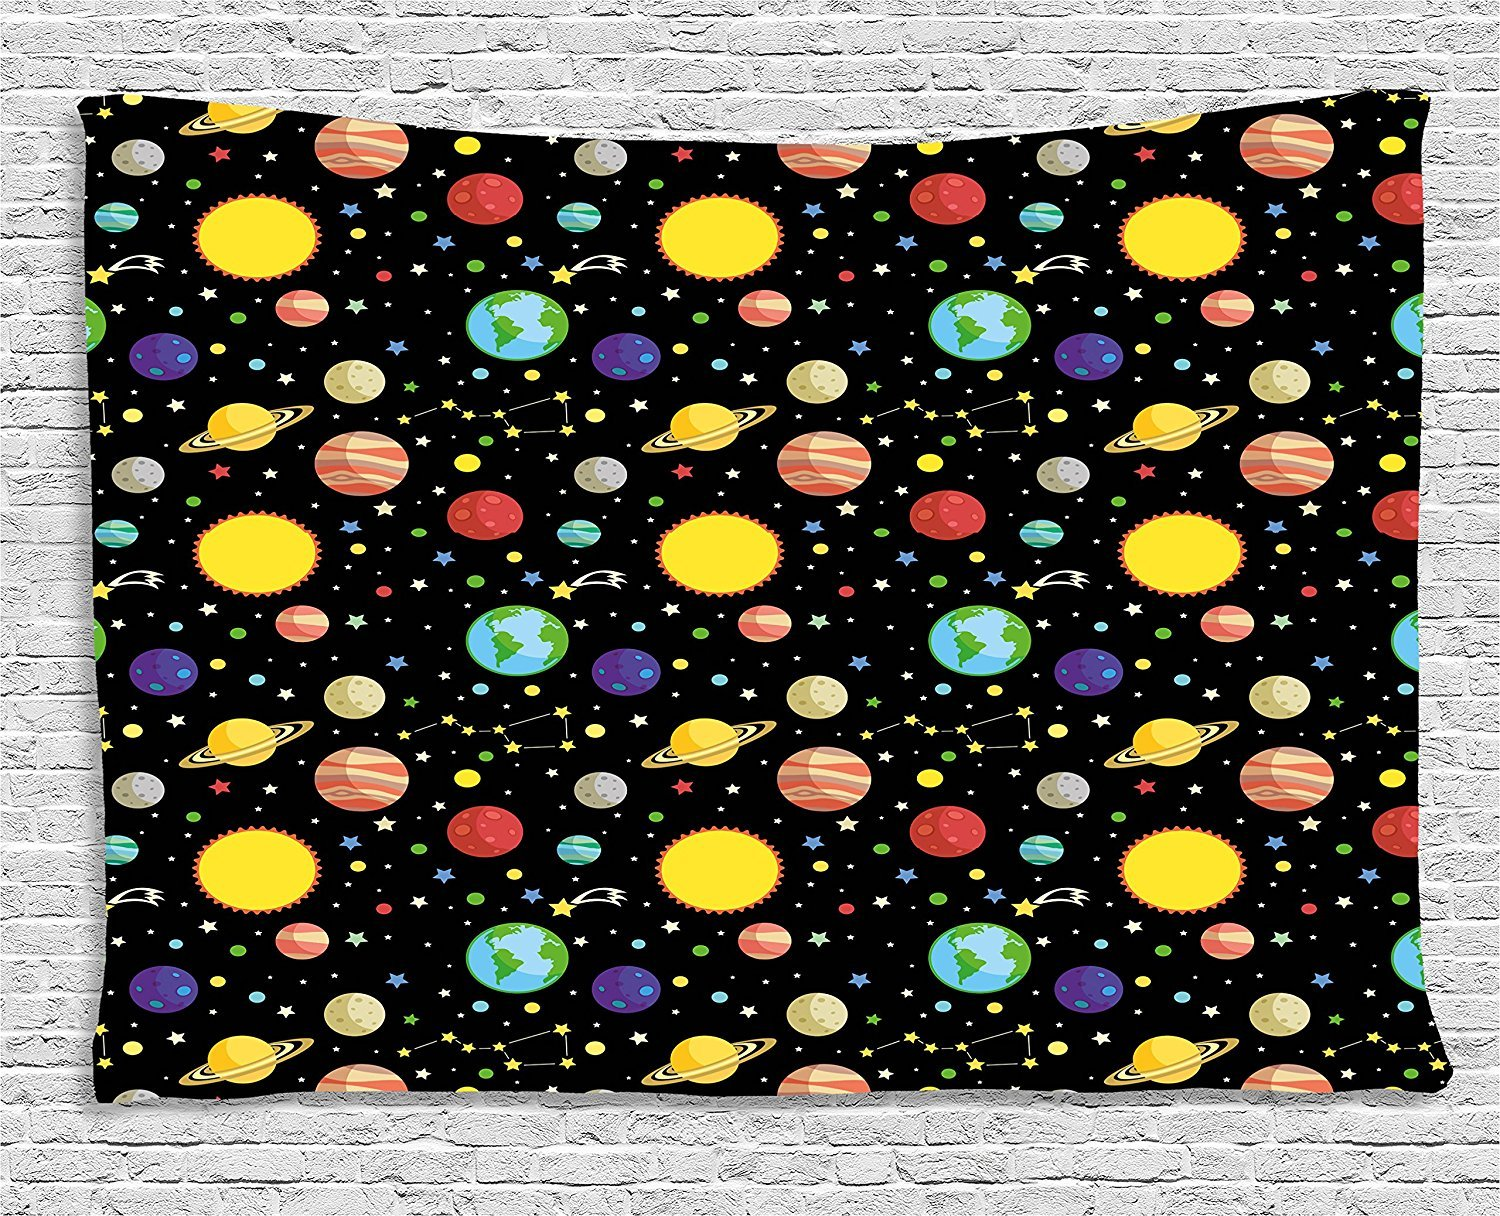 asddcdfdd Space Tapestry, Comets and Constellations Stars with Polka Dots Earth Sun Saturn Mars Solar System, Wall Hanging for Bedroom Living Room Dorm, 80 W X 60 L Inches, Multicolor